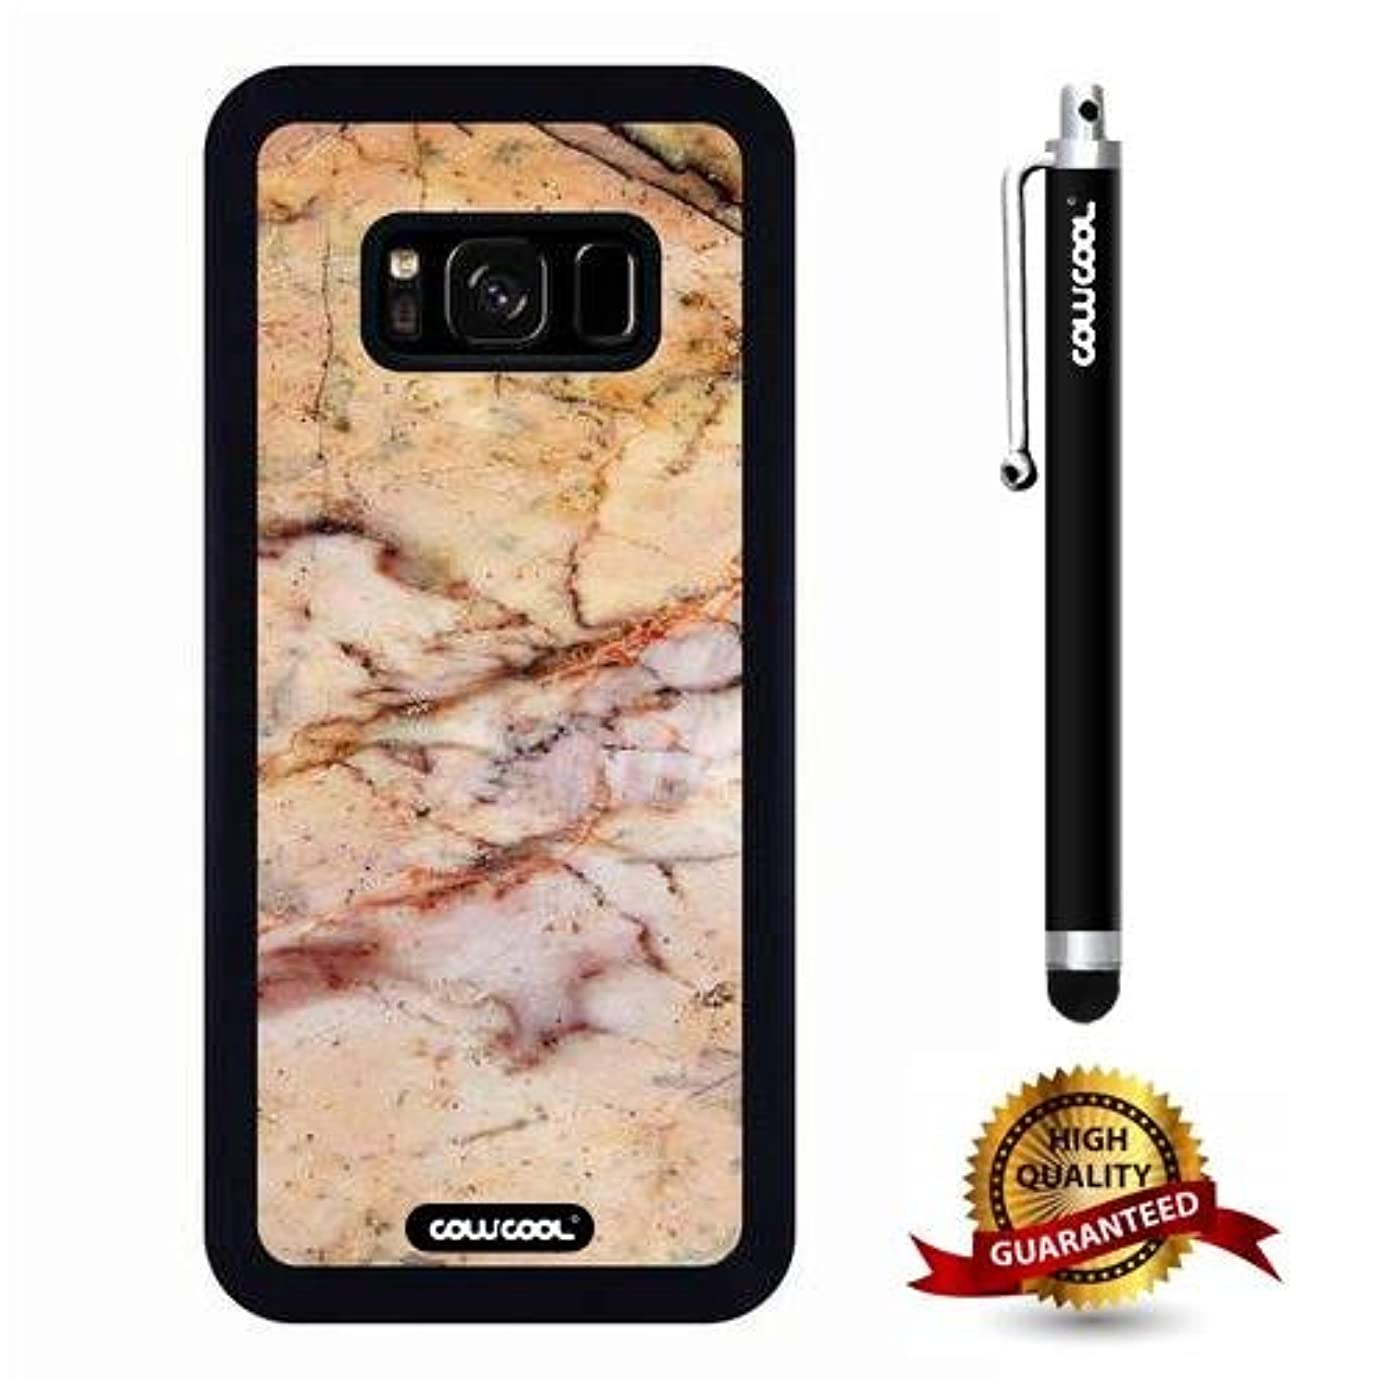 Galaxy S8 Case, Marble Pattern Case, Cowcool Ultra Thin Soft Silicone Case for Samsung Galaxy S8 - Slash The Times Marble Texture